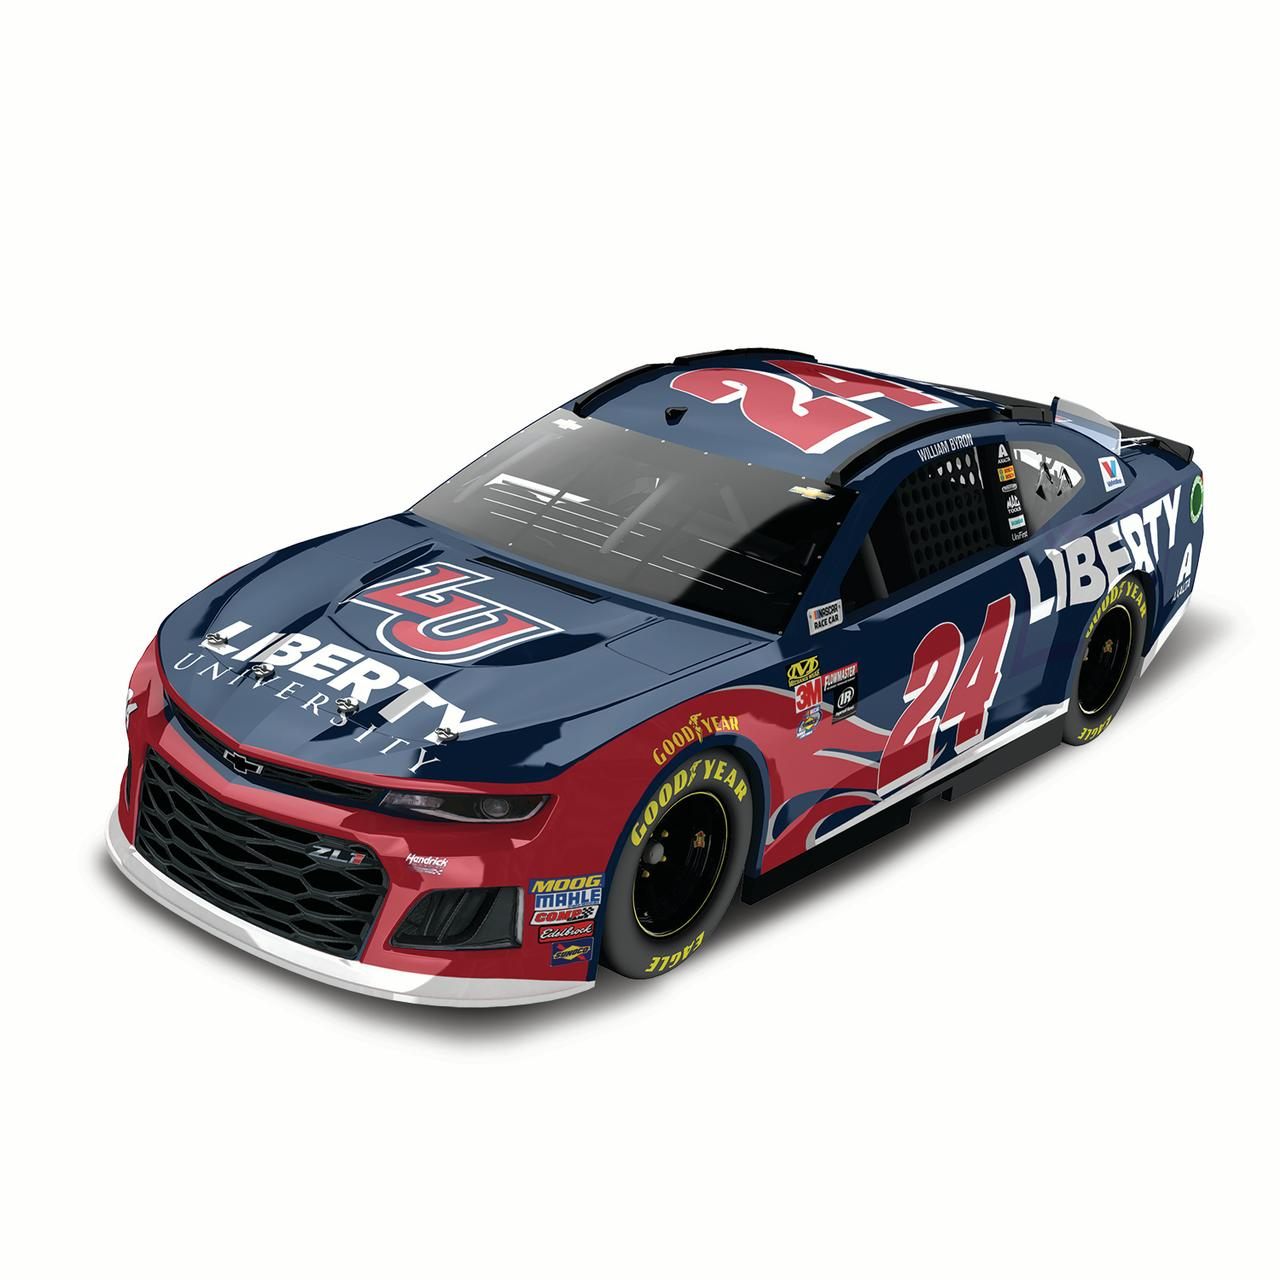 Lionel Racing William Byron #24 Liberty University 2018 Chevrolet Camaro 1:24 Scale HO Die-cast